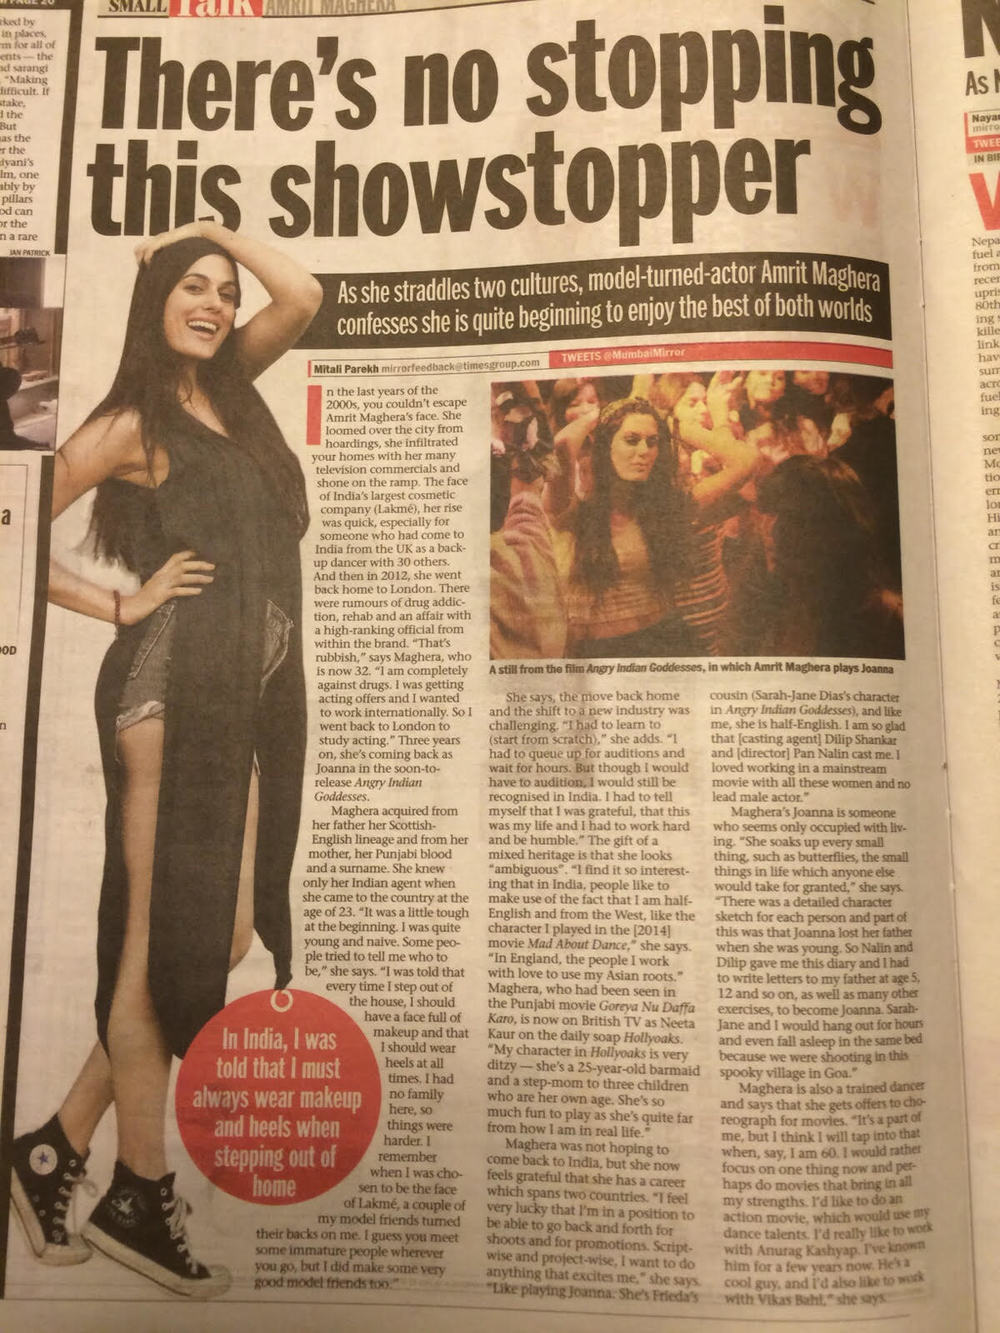 The Times of India (Bombay Times)